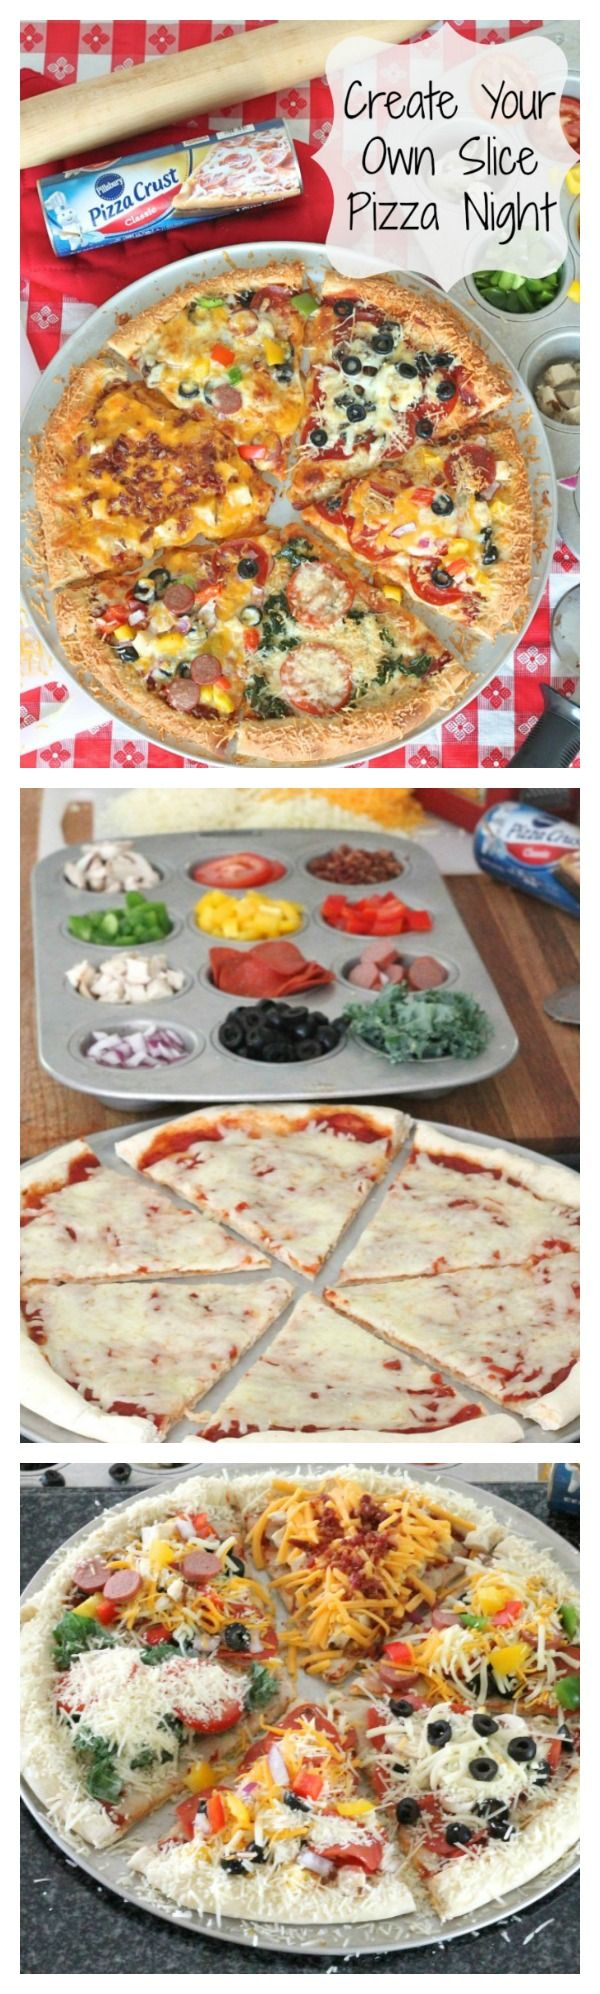 Get the kids involved in the pizza making fun!